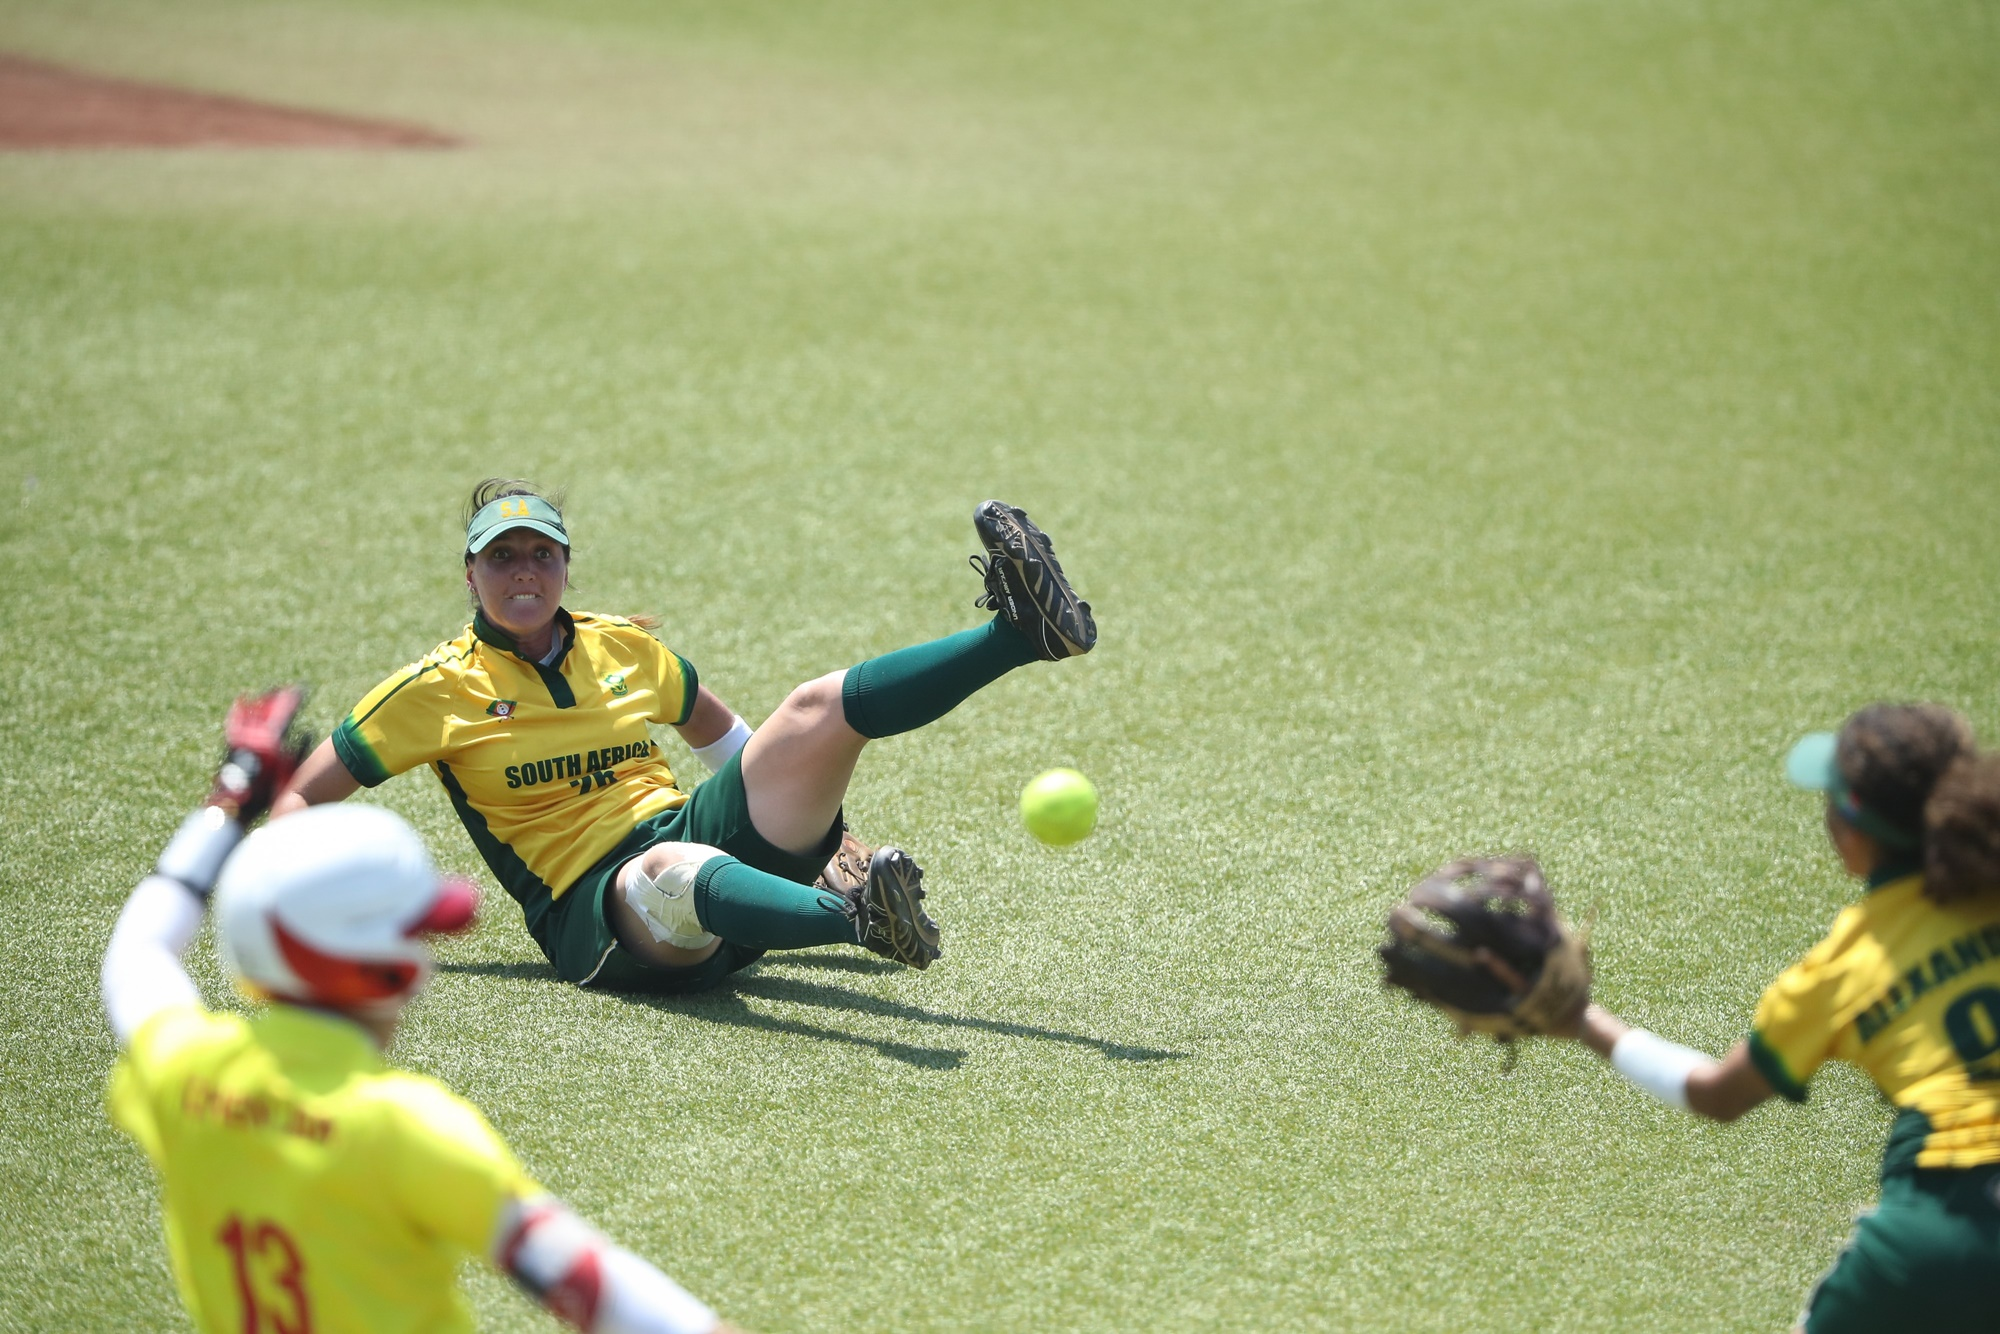 South Africa's defense tries hard